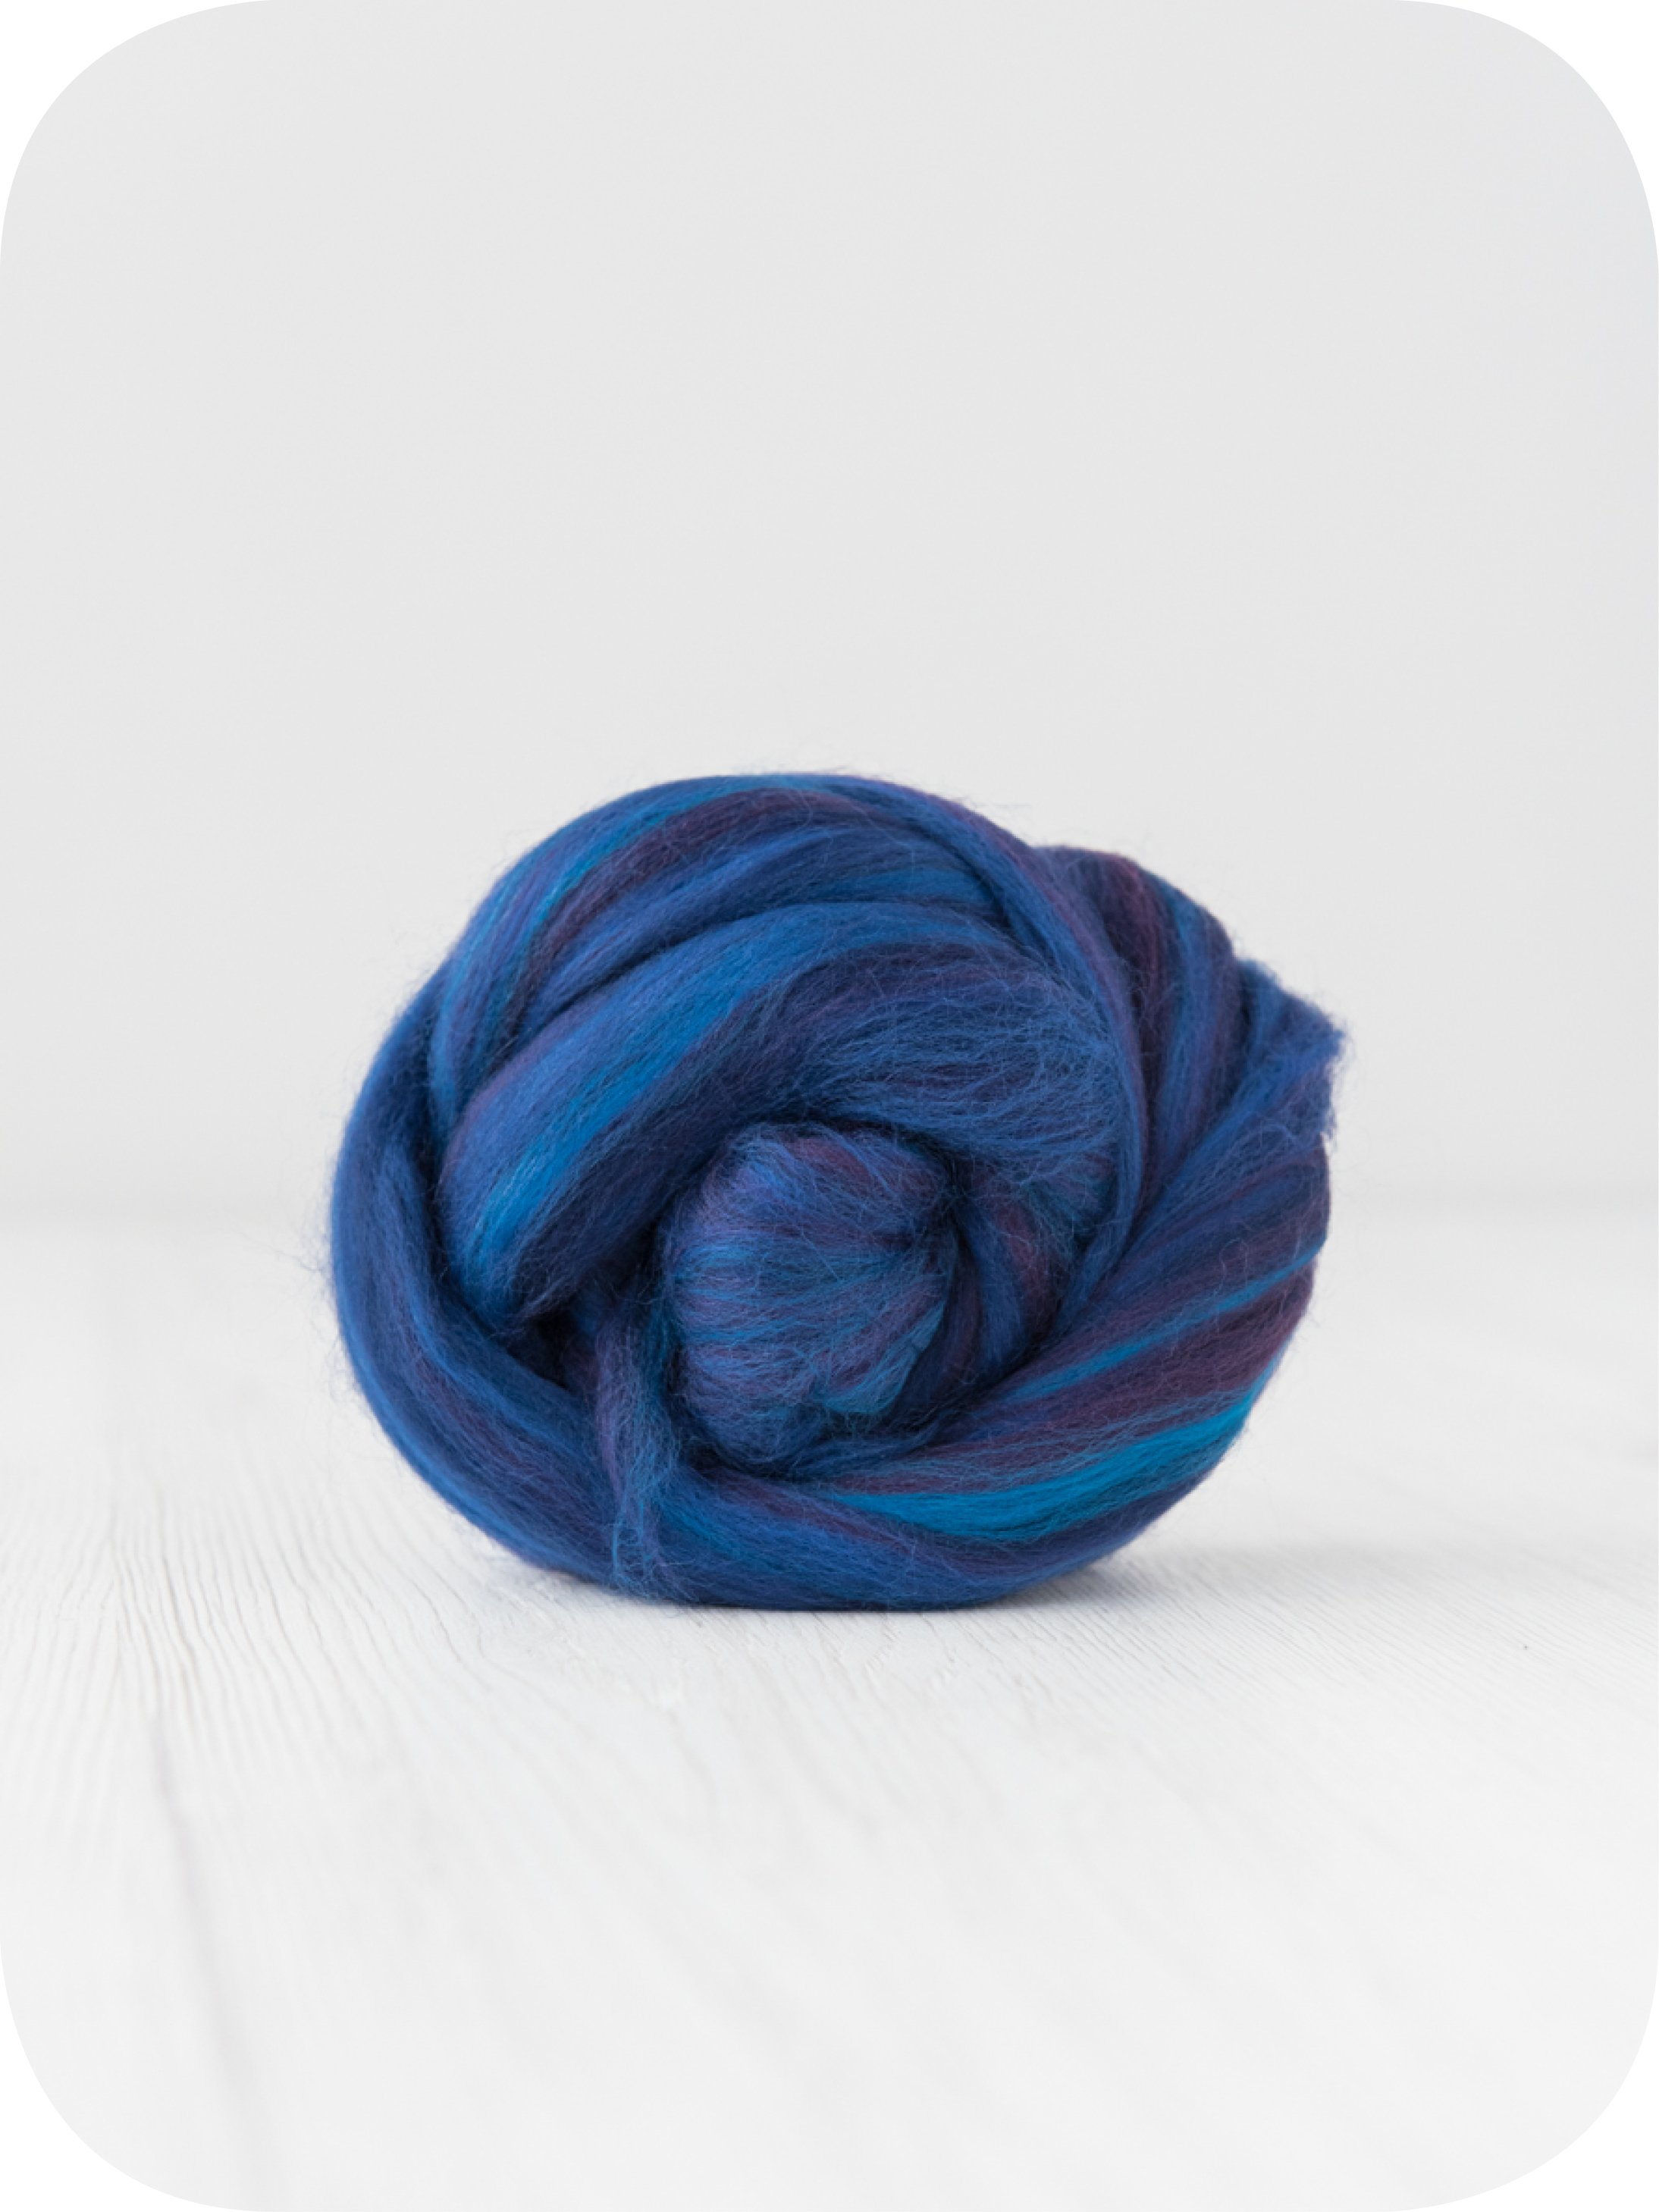 Image of 10 Kg. Extra Fine Merino Wool Tops (Sliver) - Sugar Candies Collection Morgana